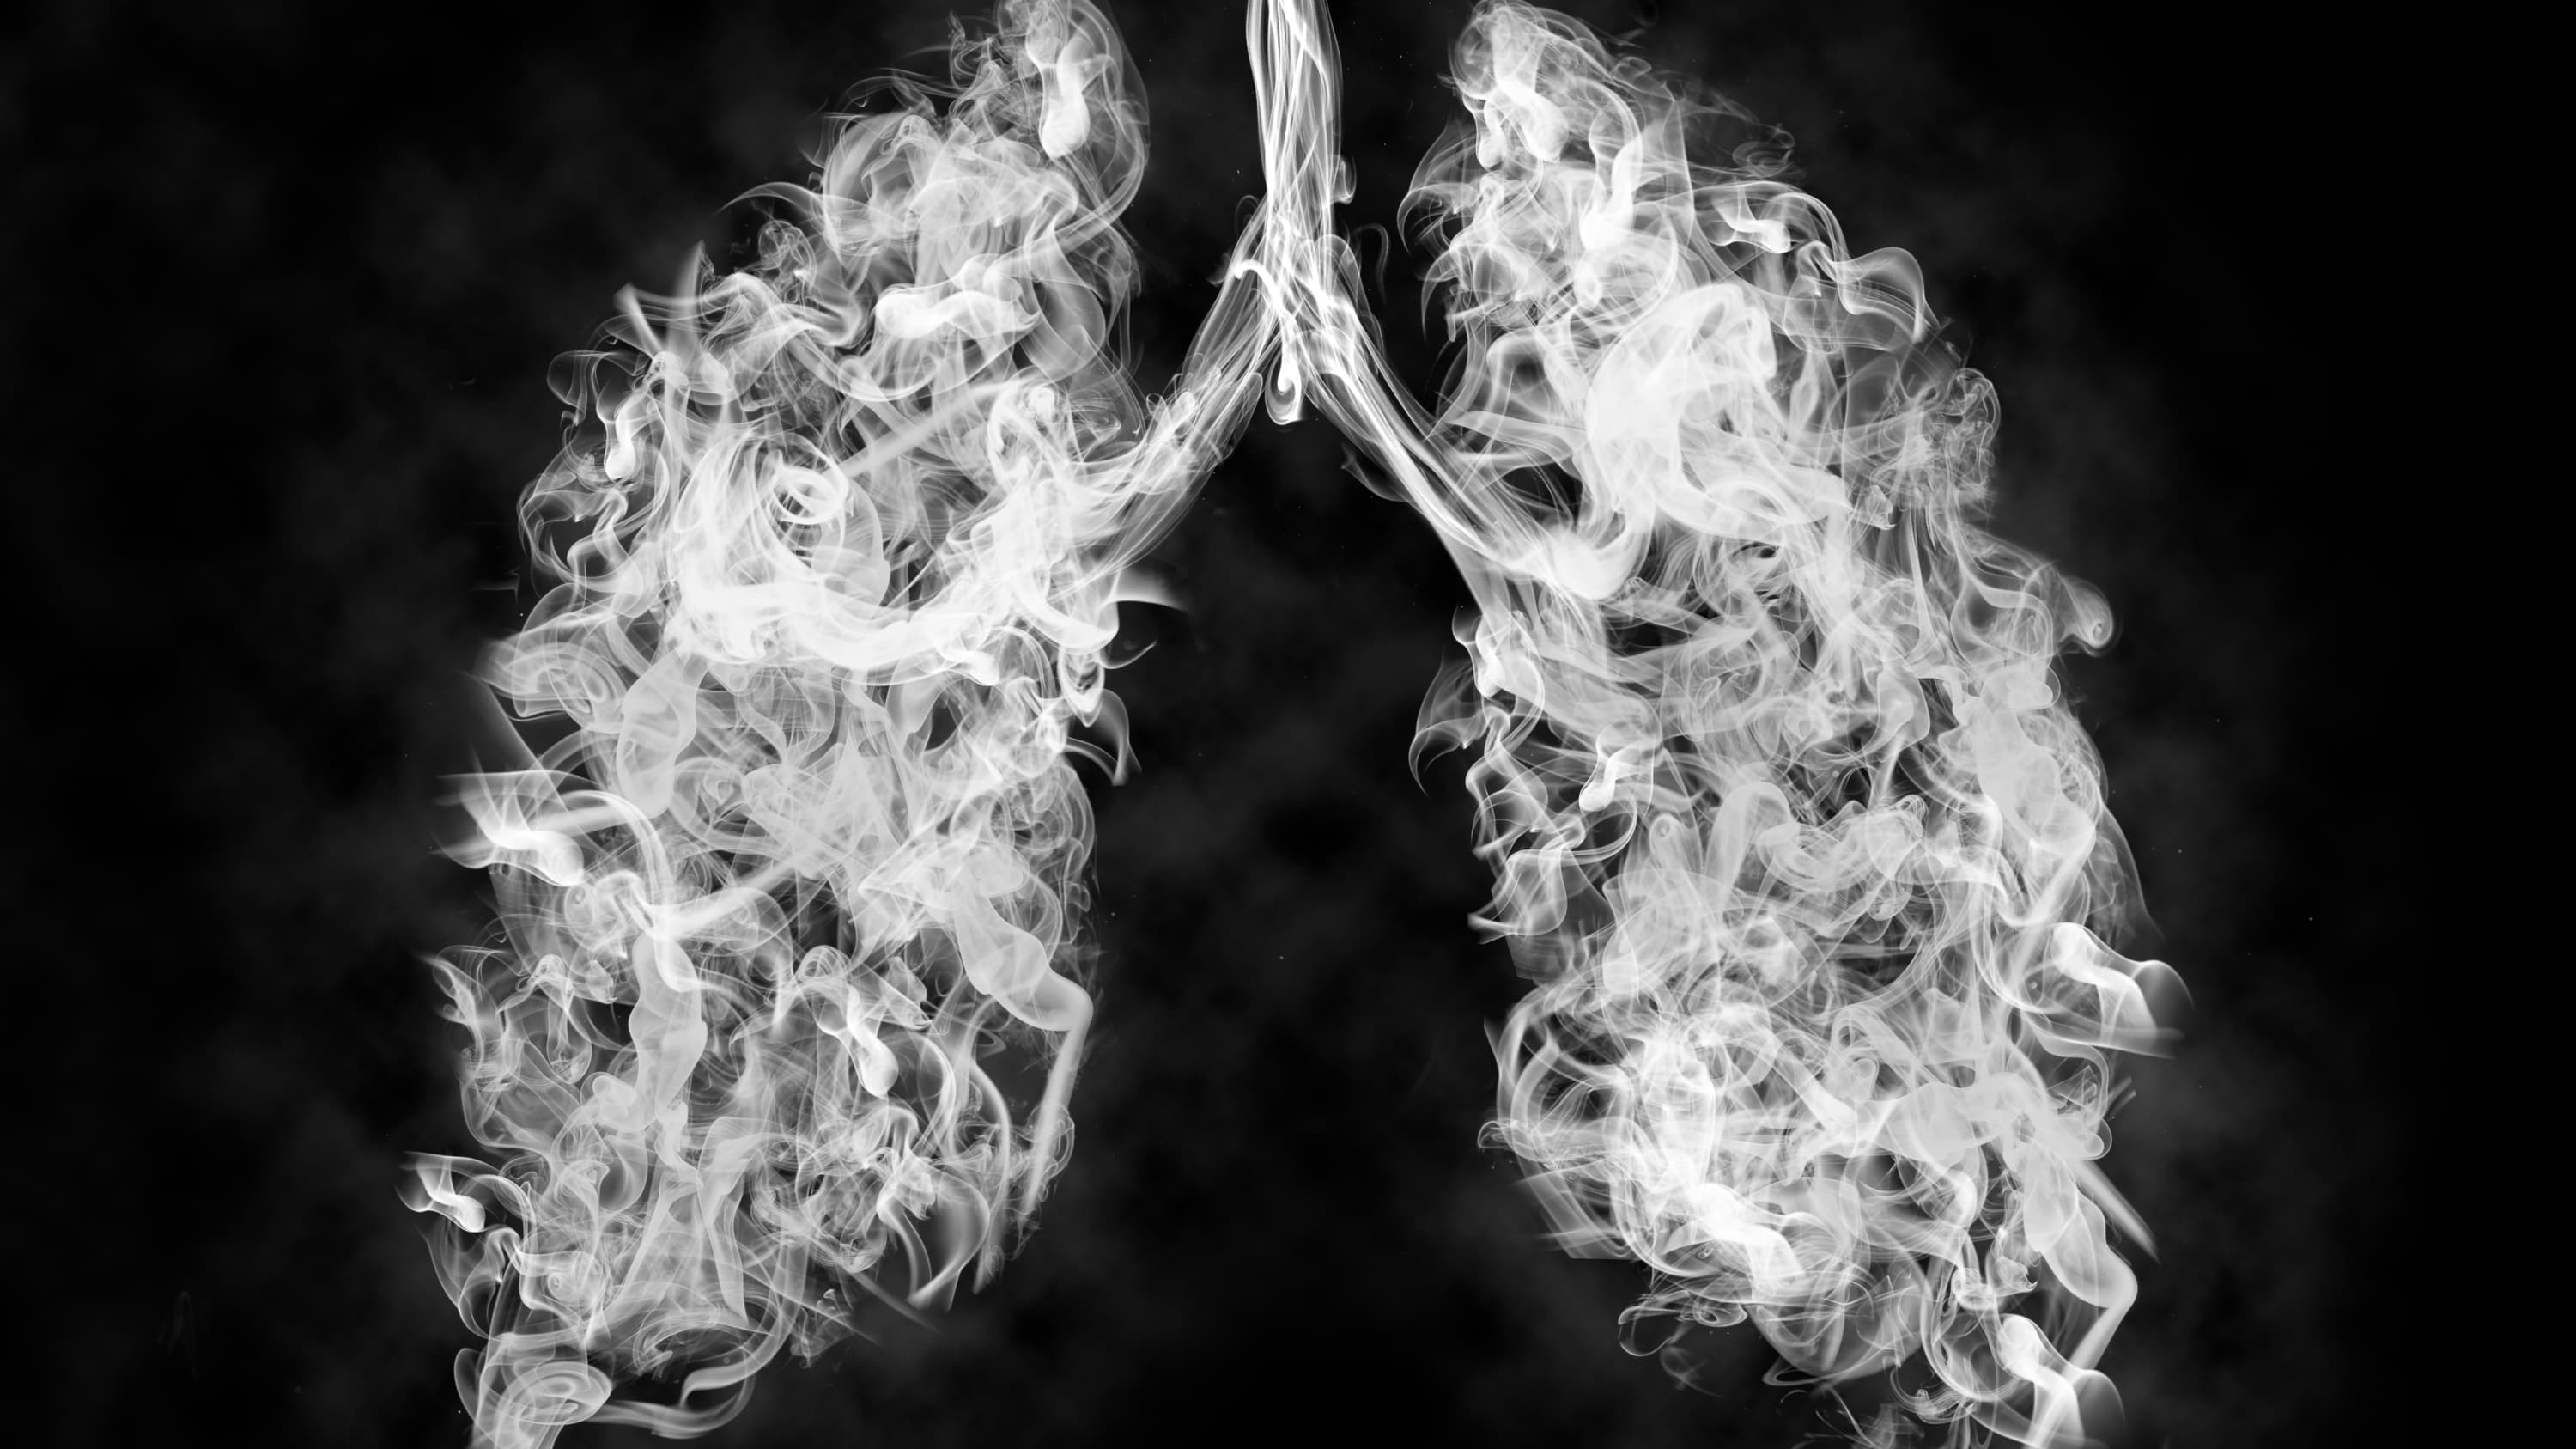 Illustration of smoke in lungs, representing the dangers of vaping